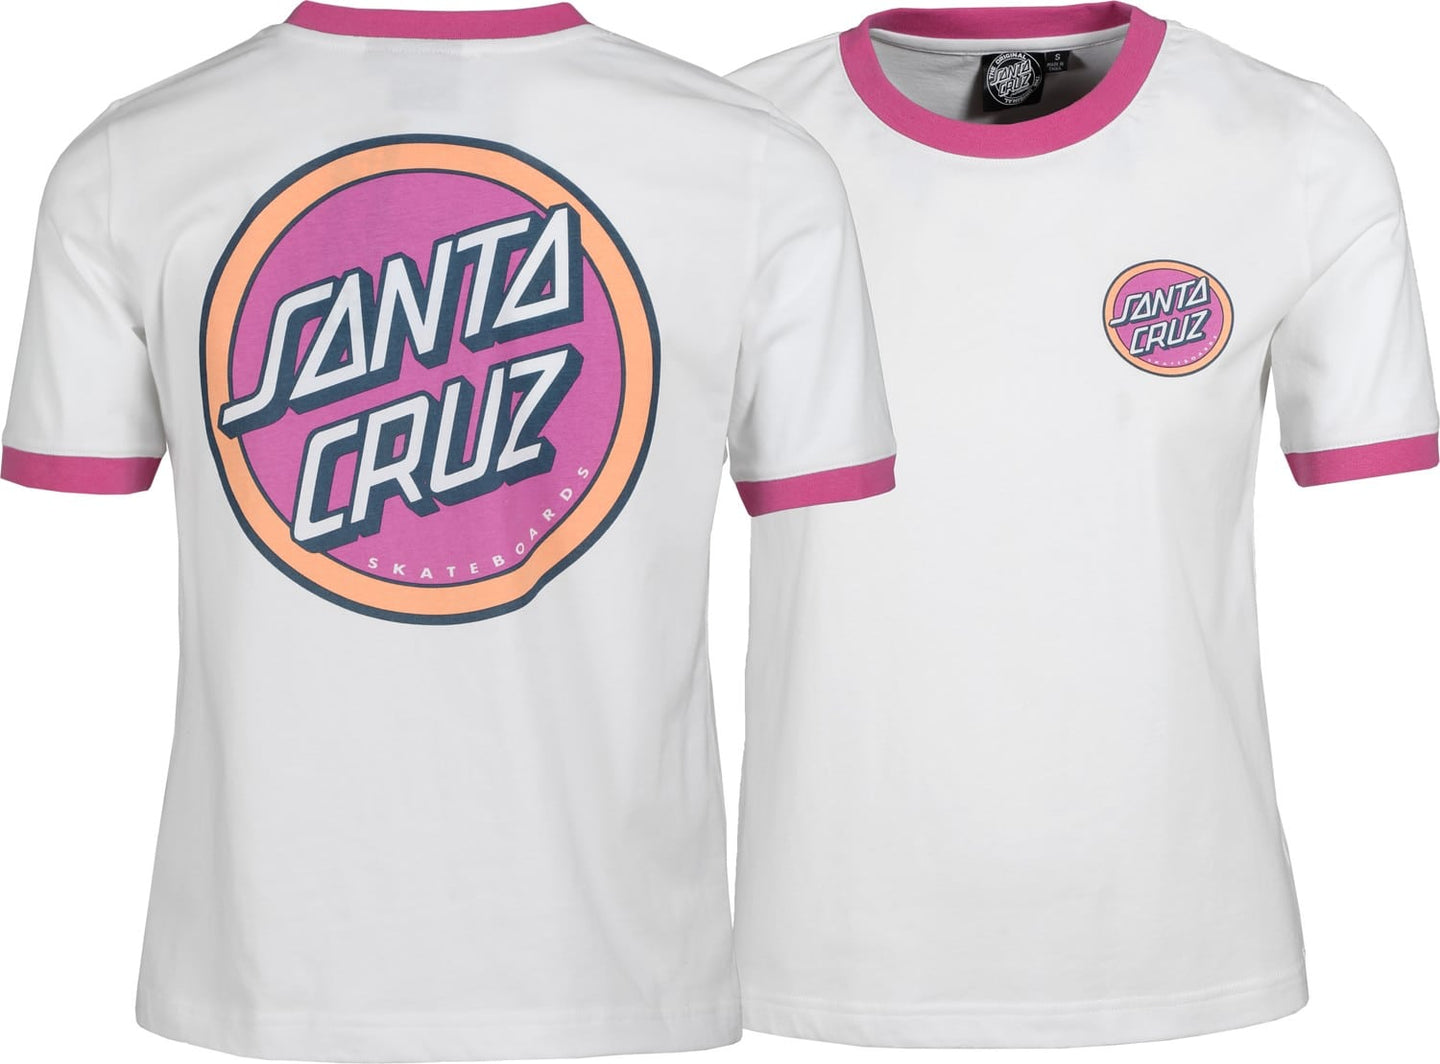 Santa Cruz Womans Retro Dot Tee Wht